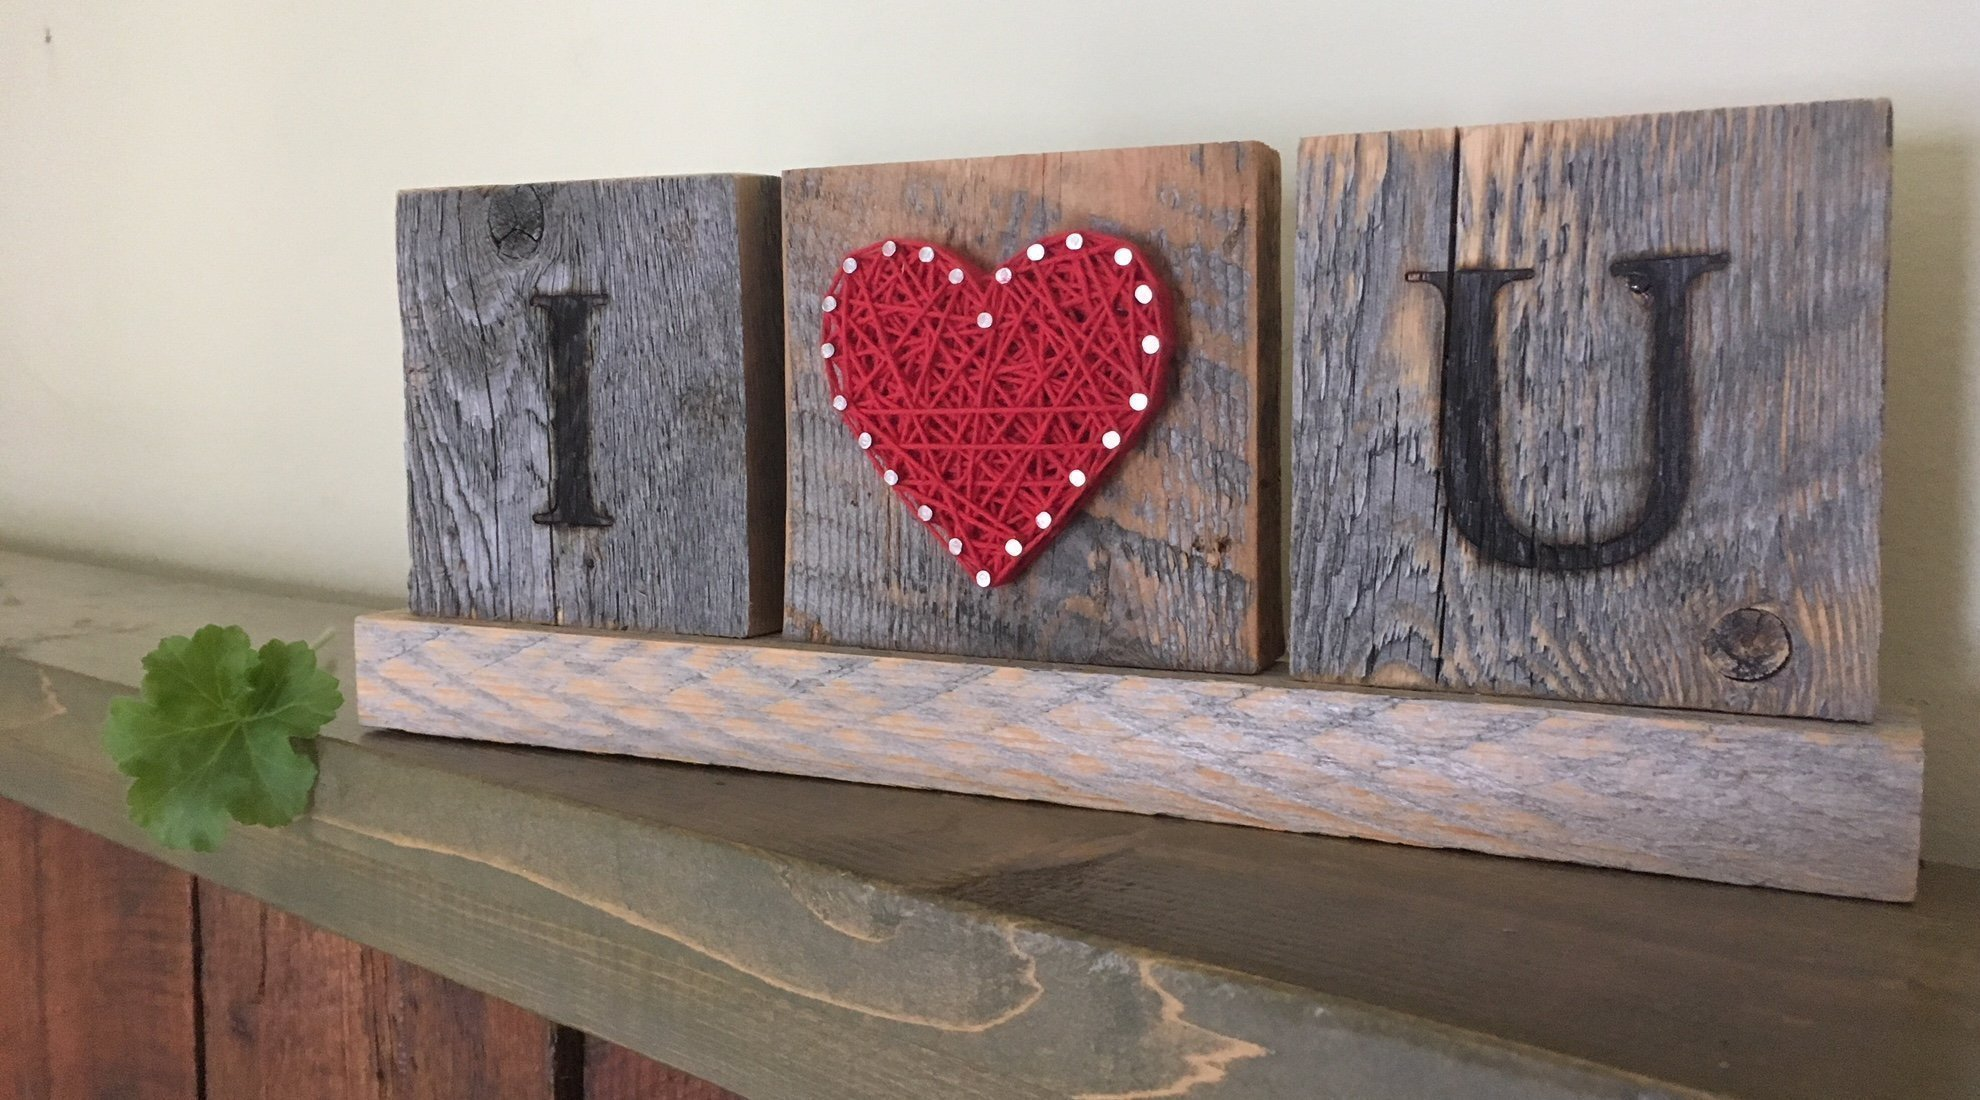 I Love you wooden desk gift. String art love sign. Great gift for Anniversary, birthday, graduation and just because gift by Nail it Art. by Nail it Art (Image #2)